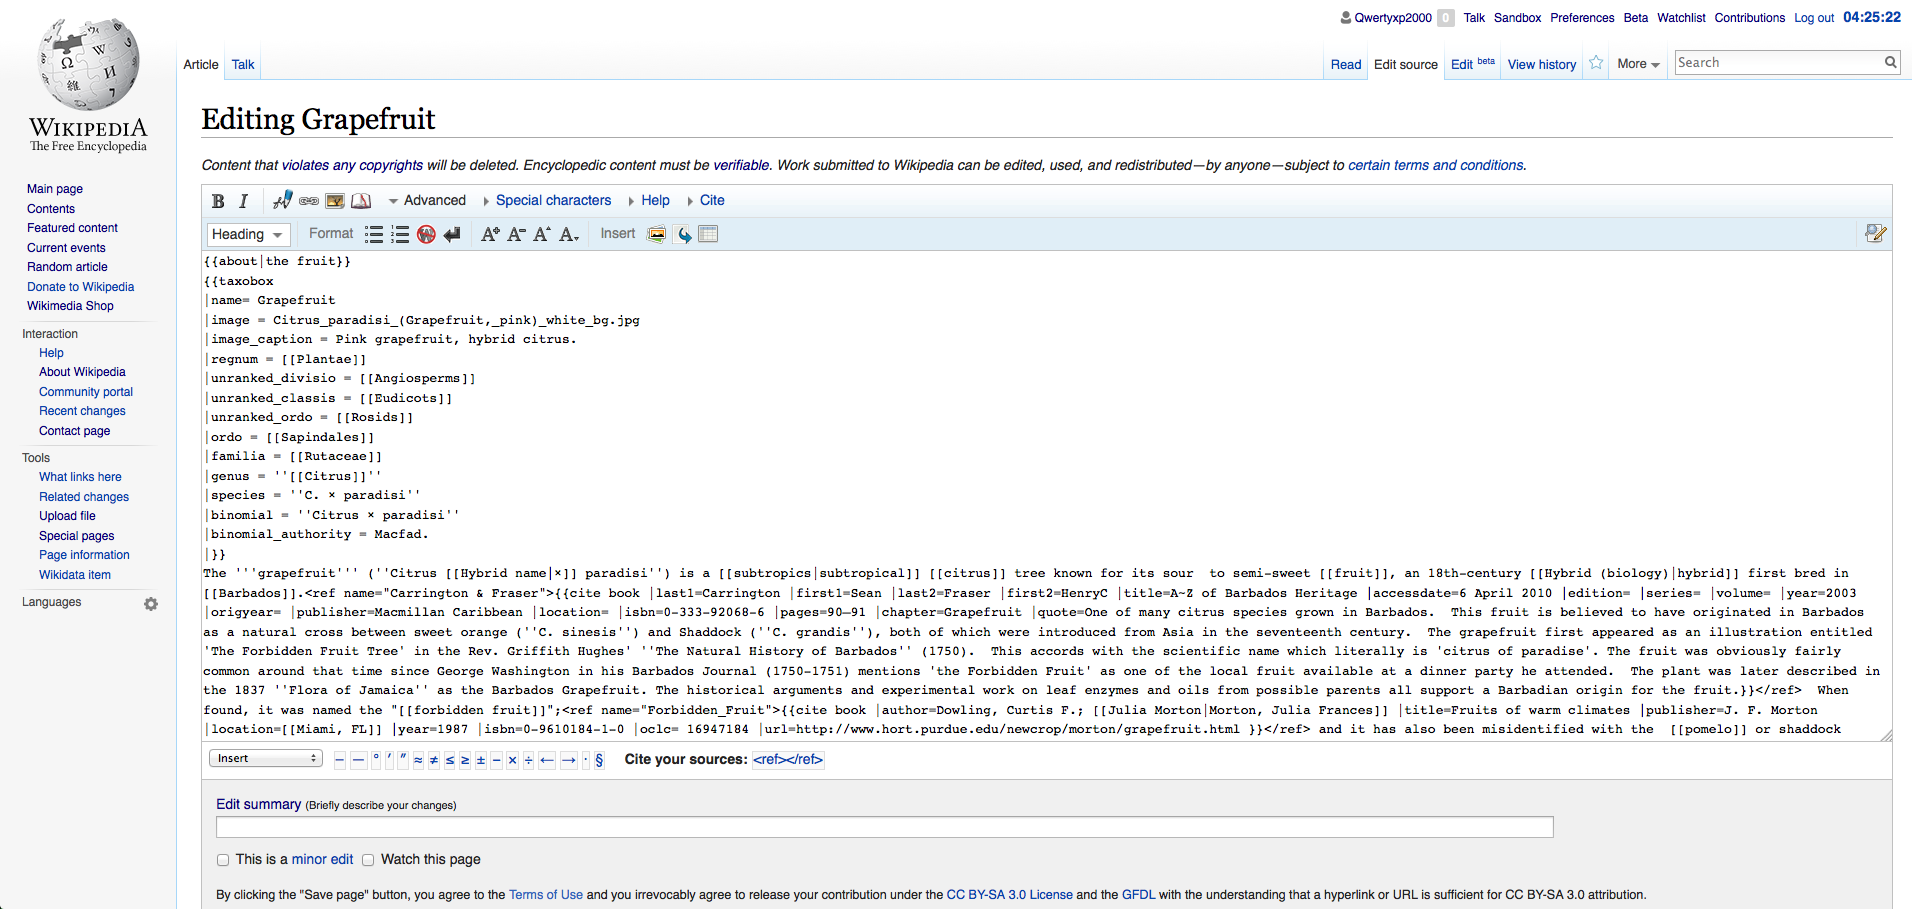 The editing interface of Wikipedia